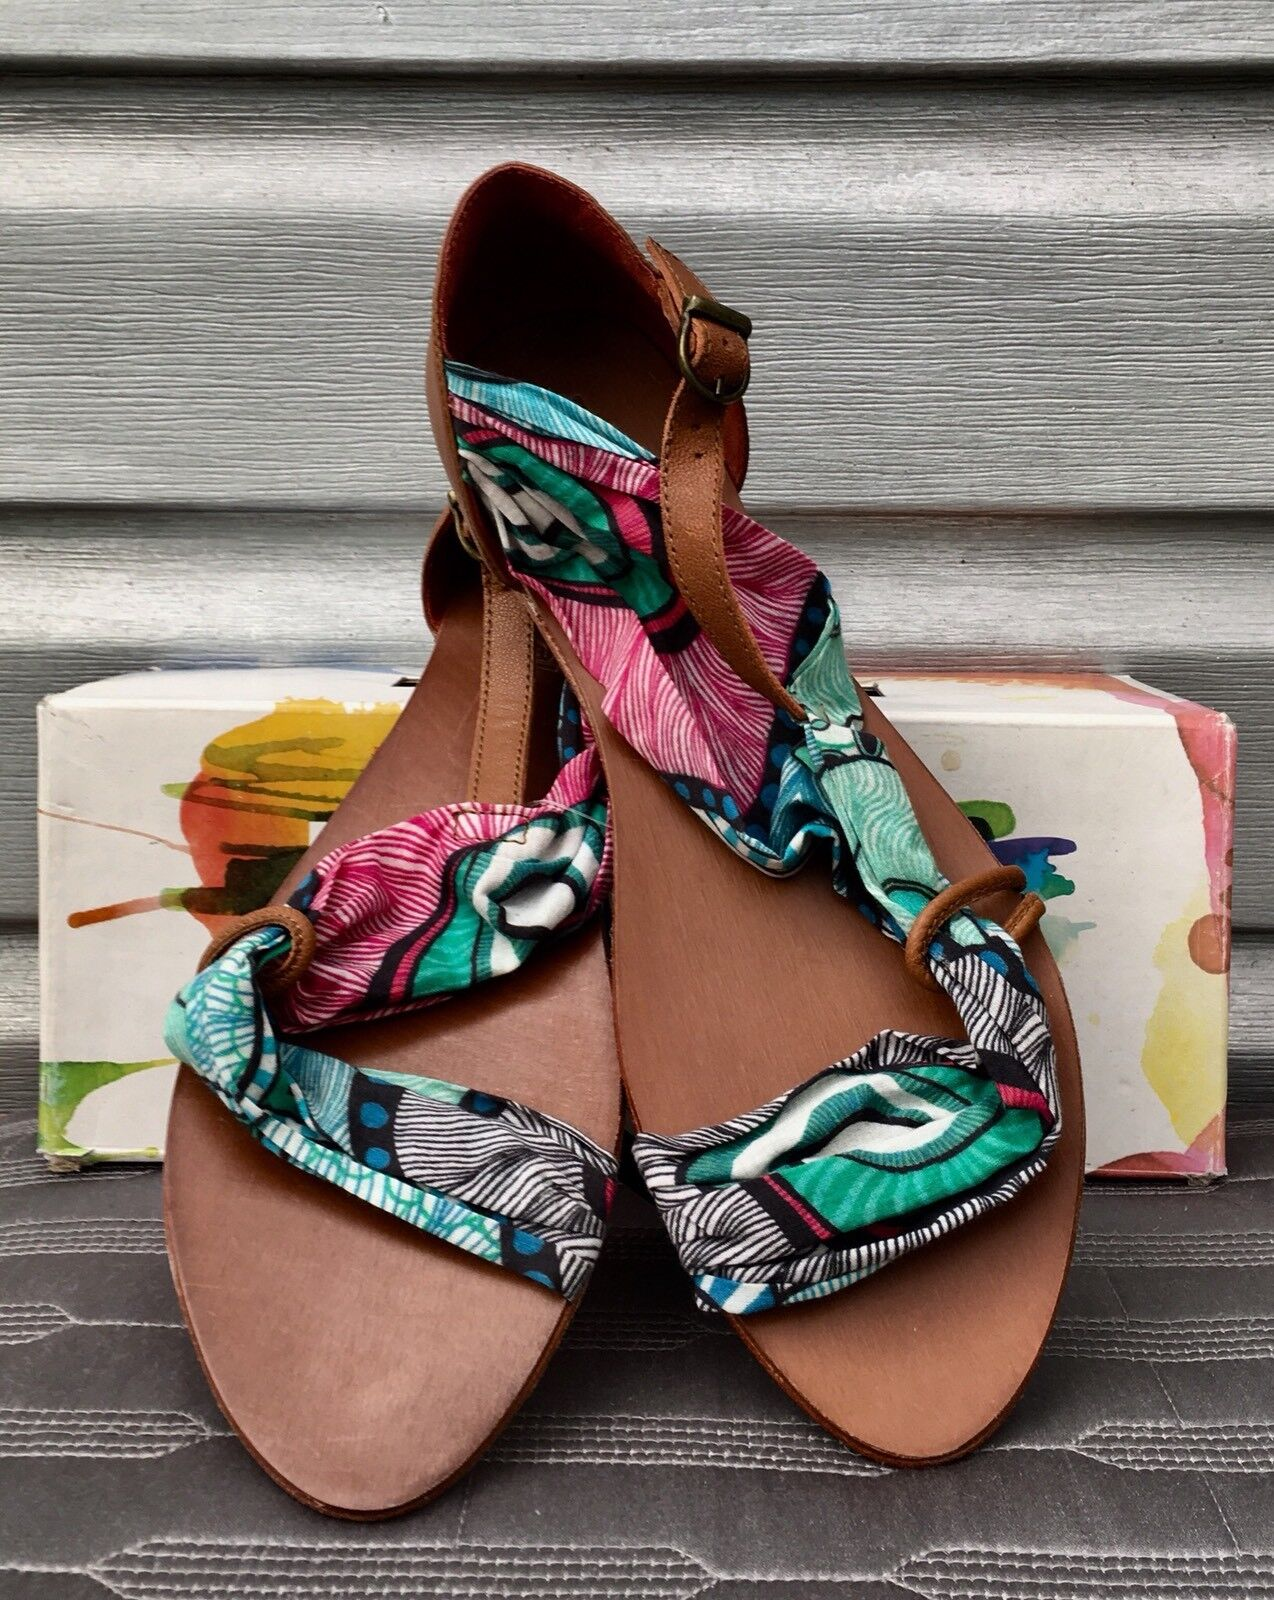 DESIGUALE Sussy  Tropical Print Strappy Sandals SOLD  prezzi all'ingrosso